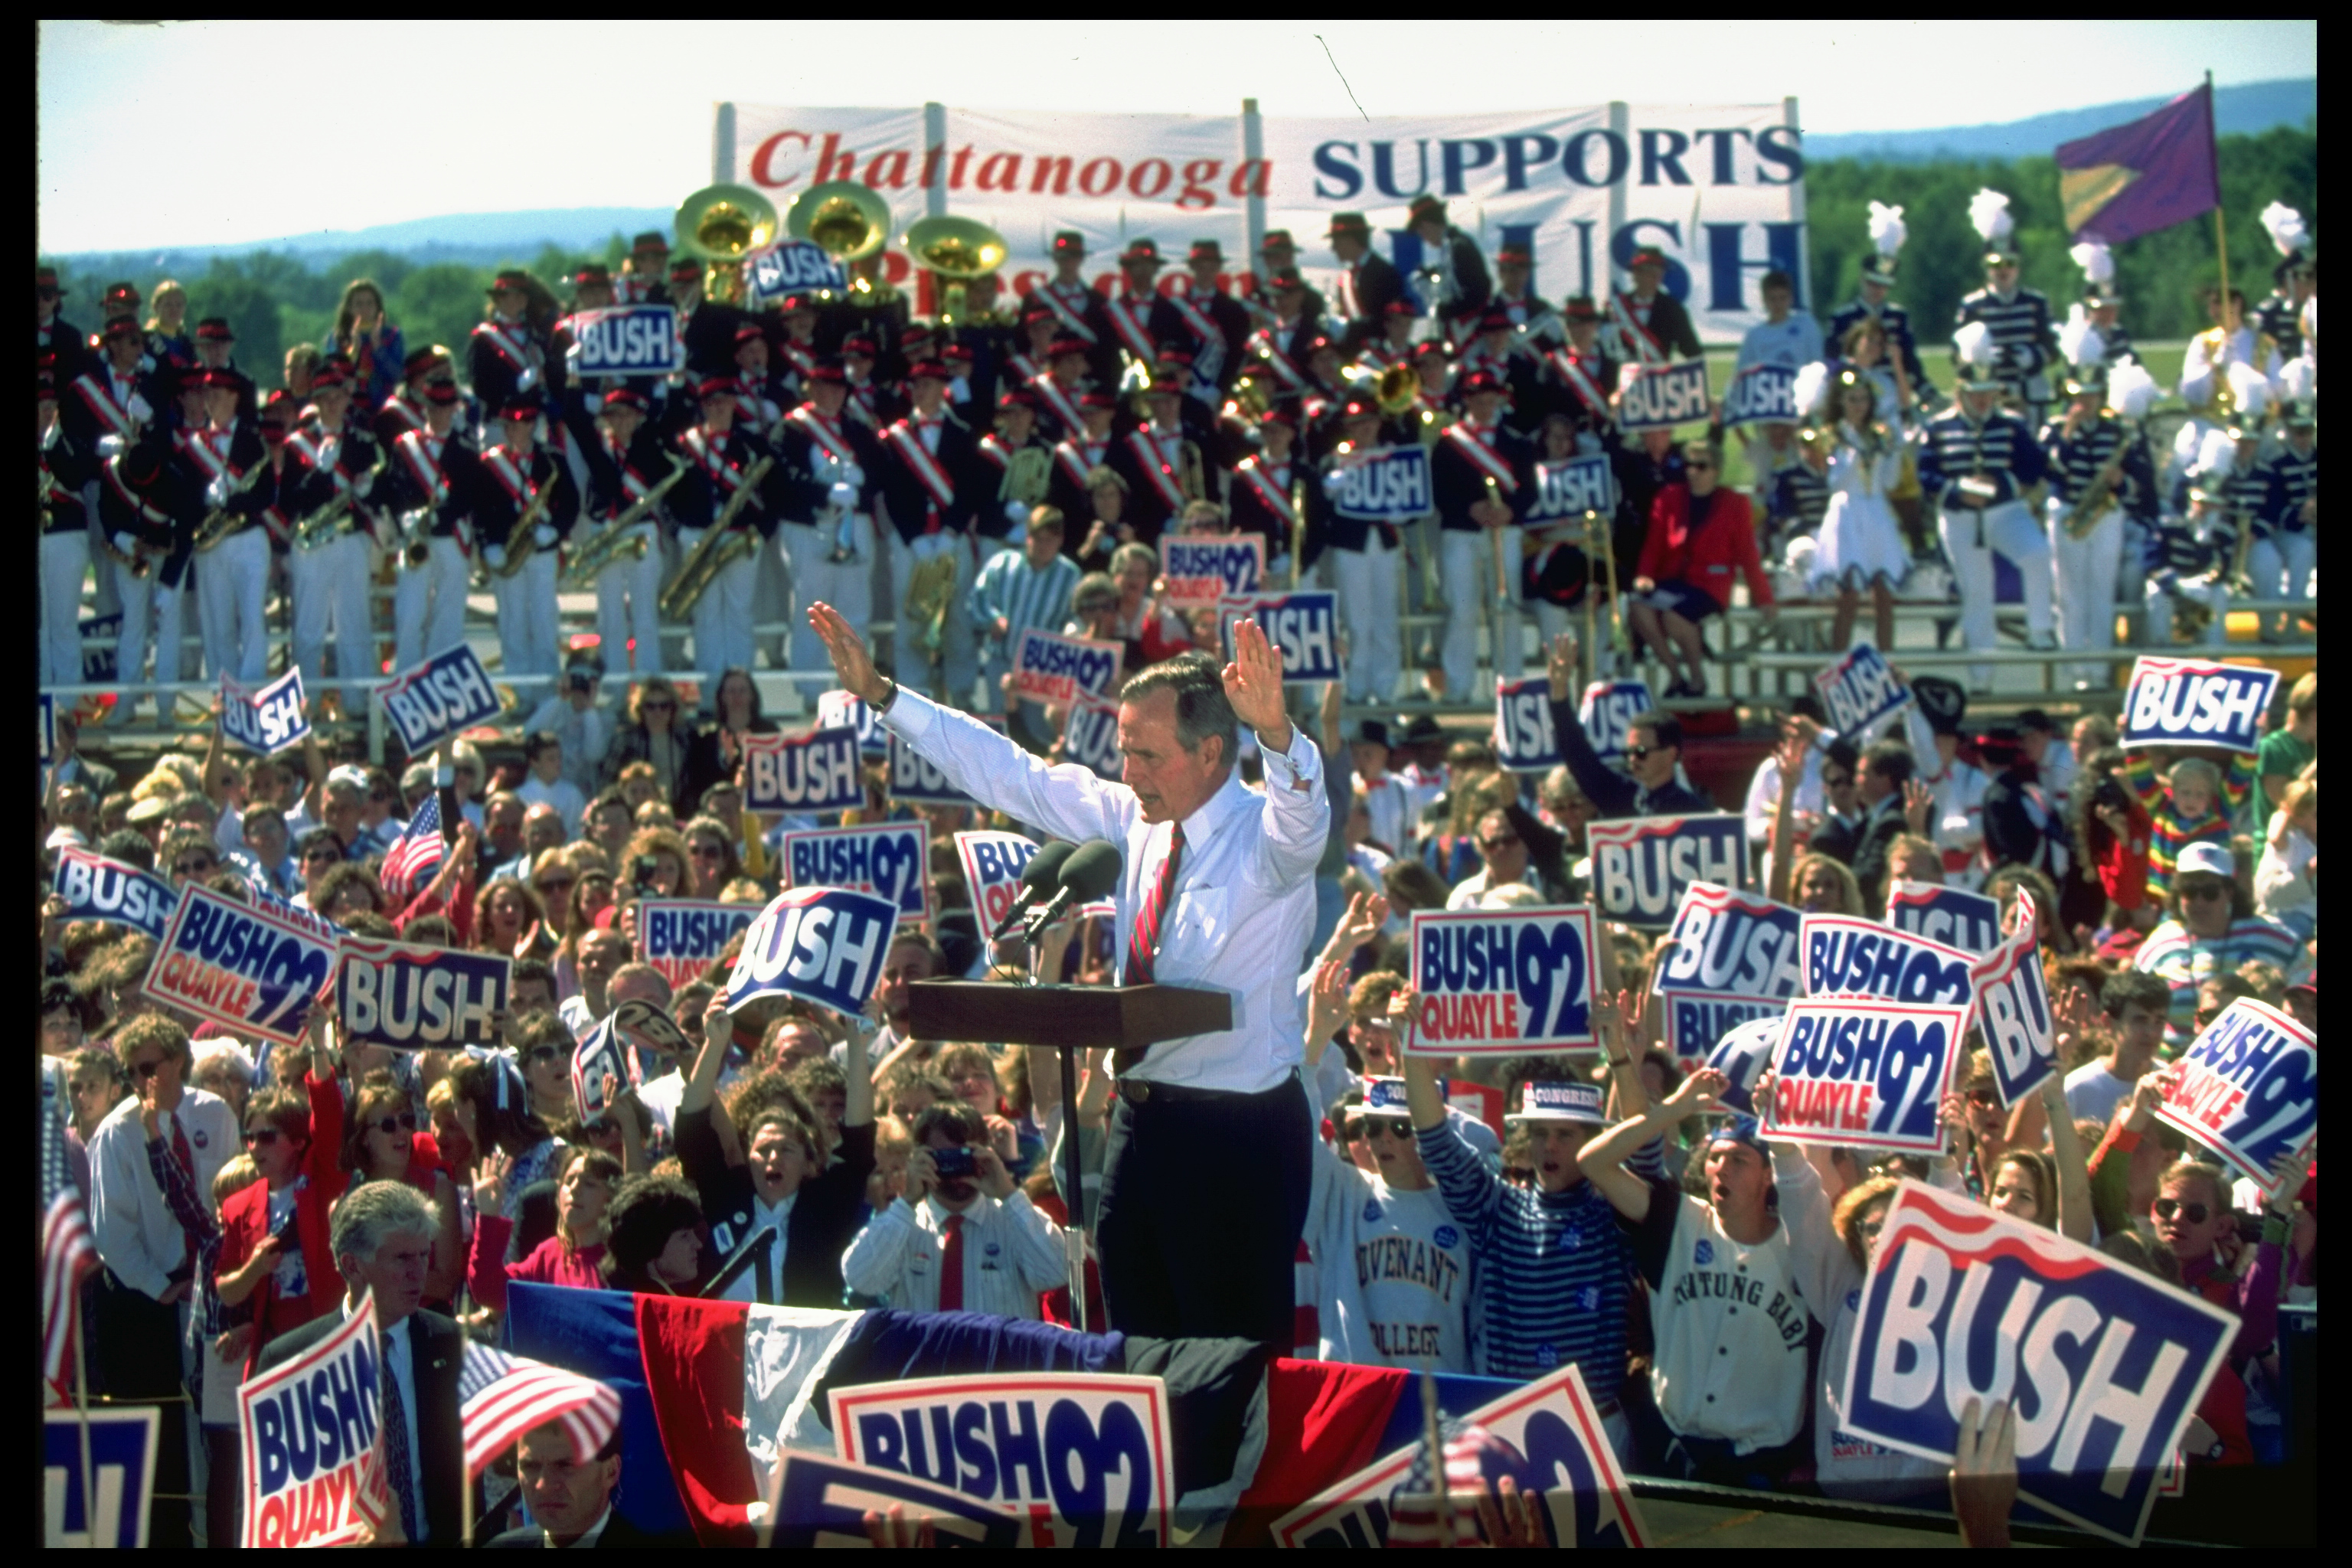 President George H.W. Bush addressing a crowd at a campaign rally on September 29, 1992.